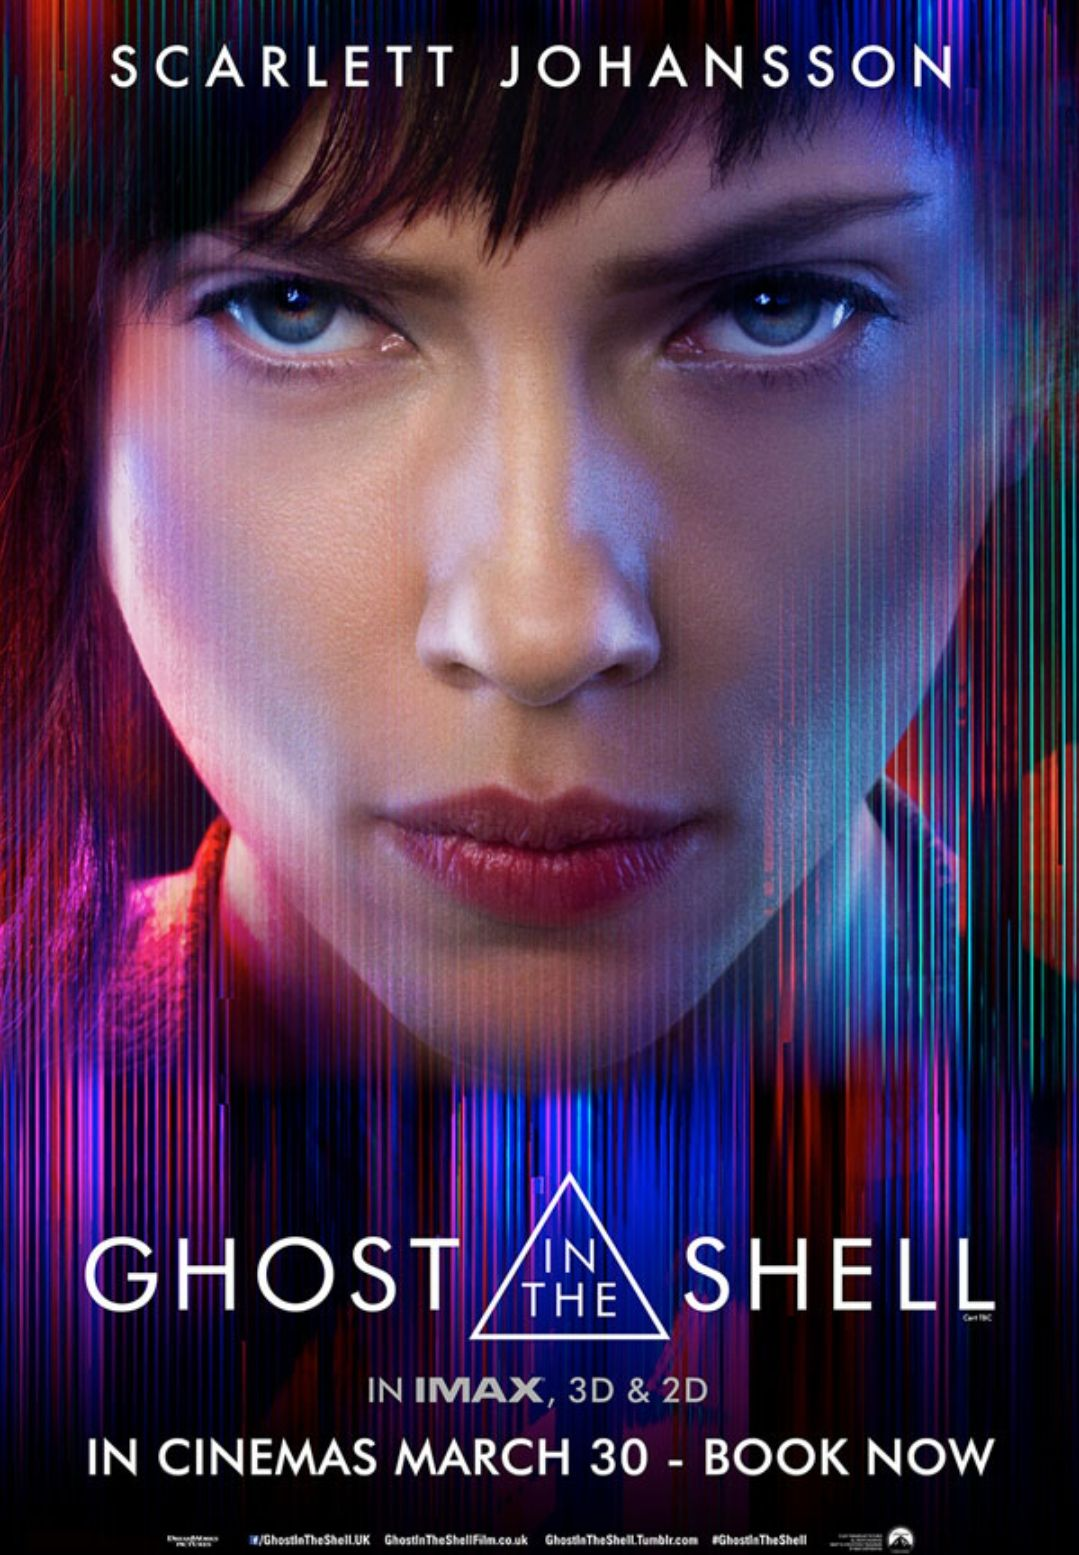 Ghost In The Shell Watch And Download Ghost In The Shell Free 1080 Px Watch All English Mov Ghost In The Shell Scarlett Johansson Ghost Scarlett Johansson